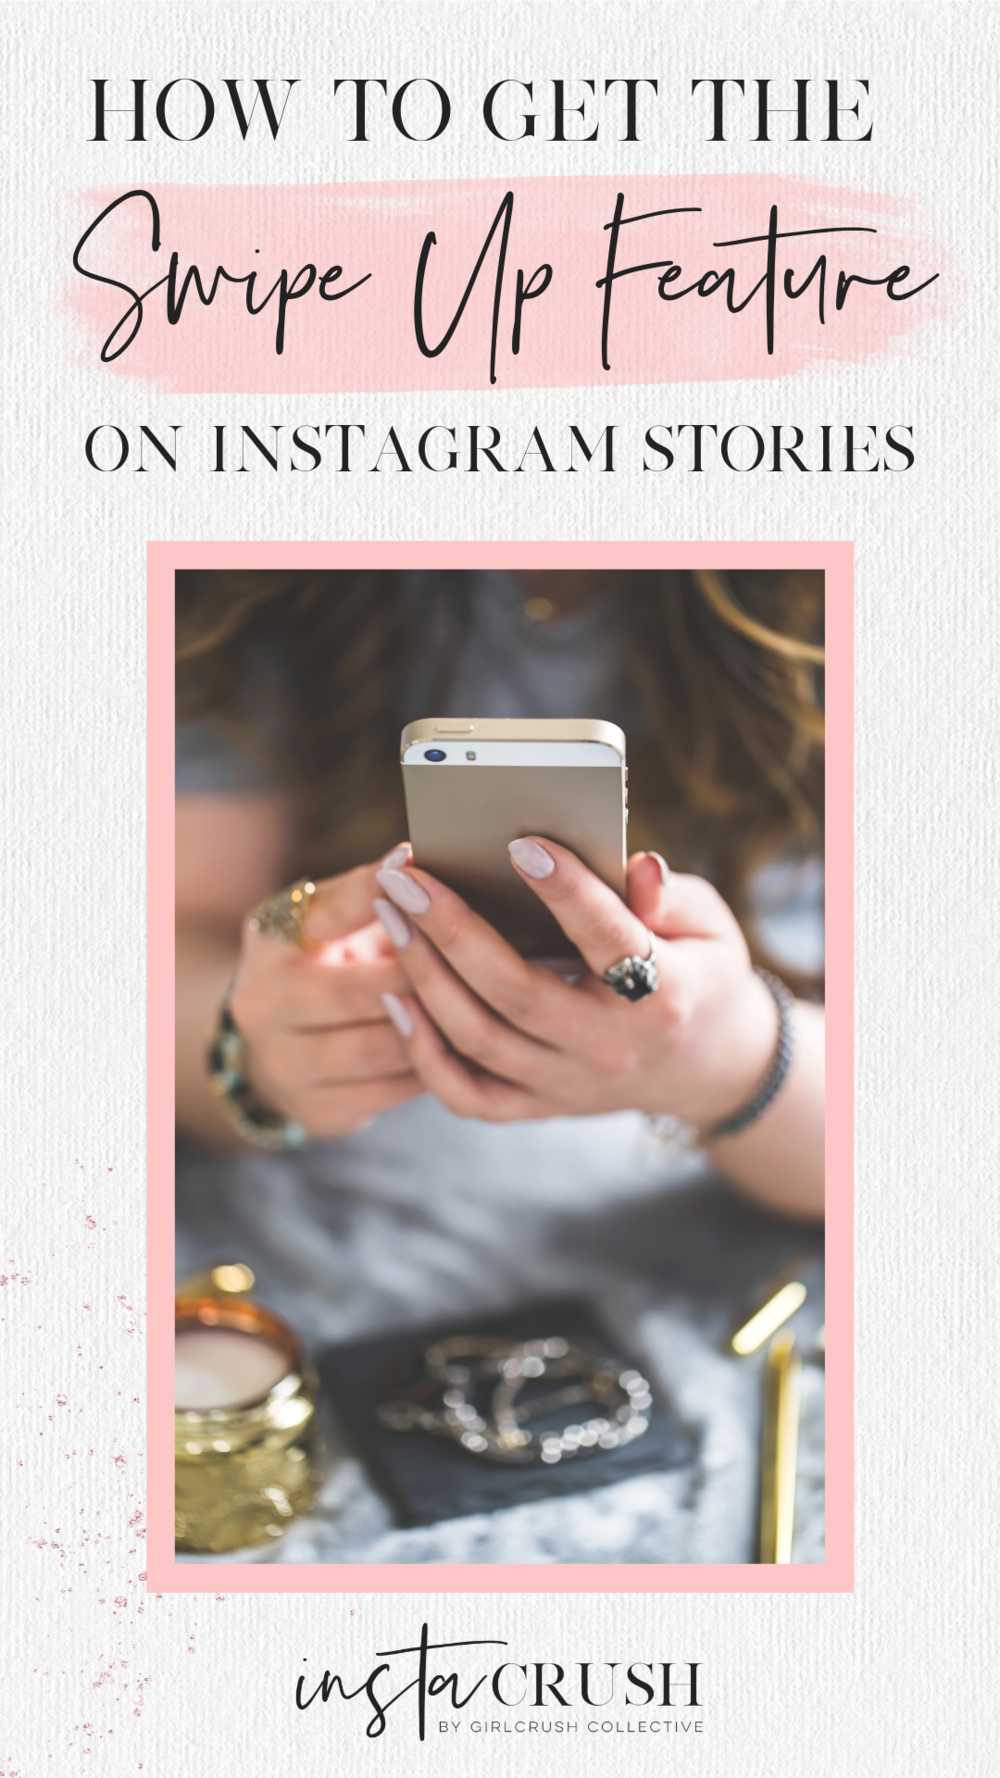 How To Get The Swipe Up Feature On Instagram Stories Instacrush Society By Girlcrush Collective Instagram For Business Instagram Marketing Tips Instagram Story Instagram Strategy